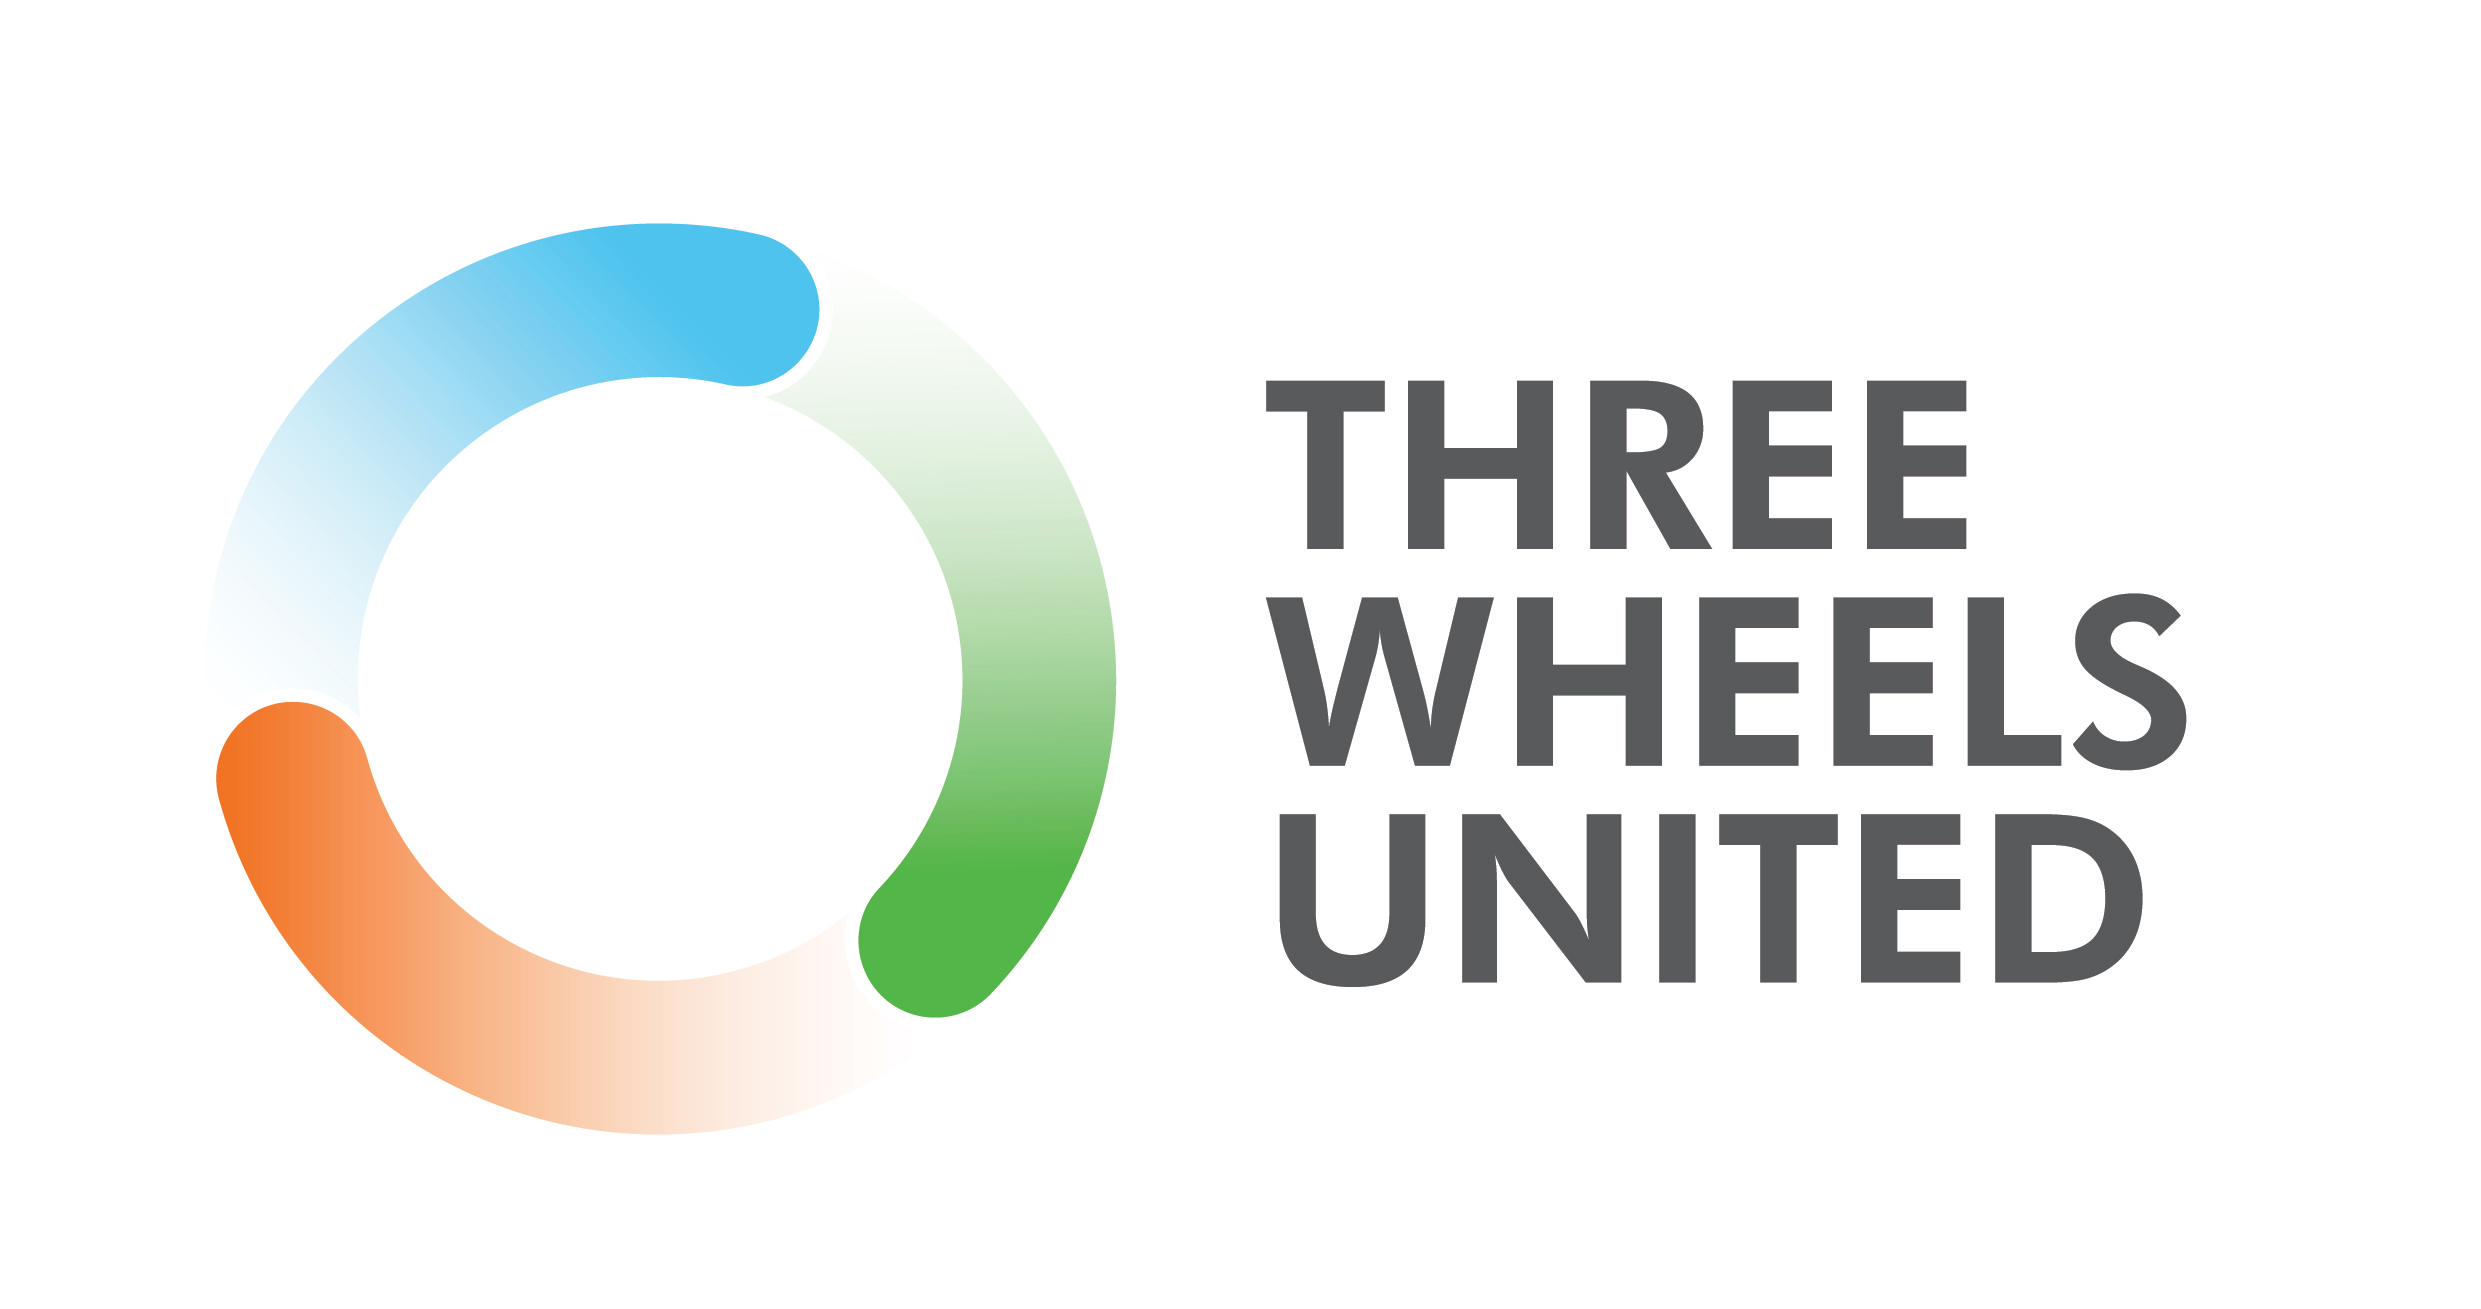 Three Wheels United - Using technology and finance to decarbonize the rickshaw market while putting the autorickshaw drivers first by empowering them to own and operate electric vehicles and to integrate with public transport.